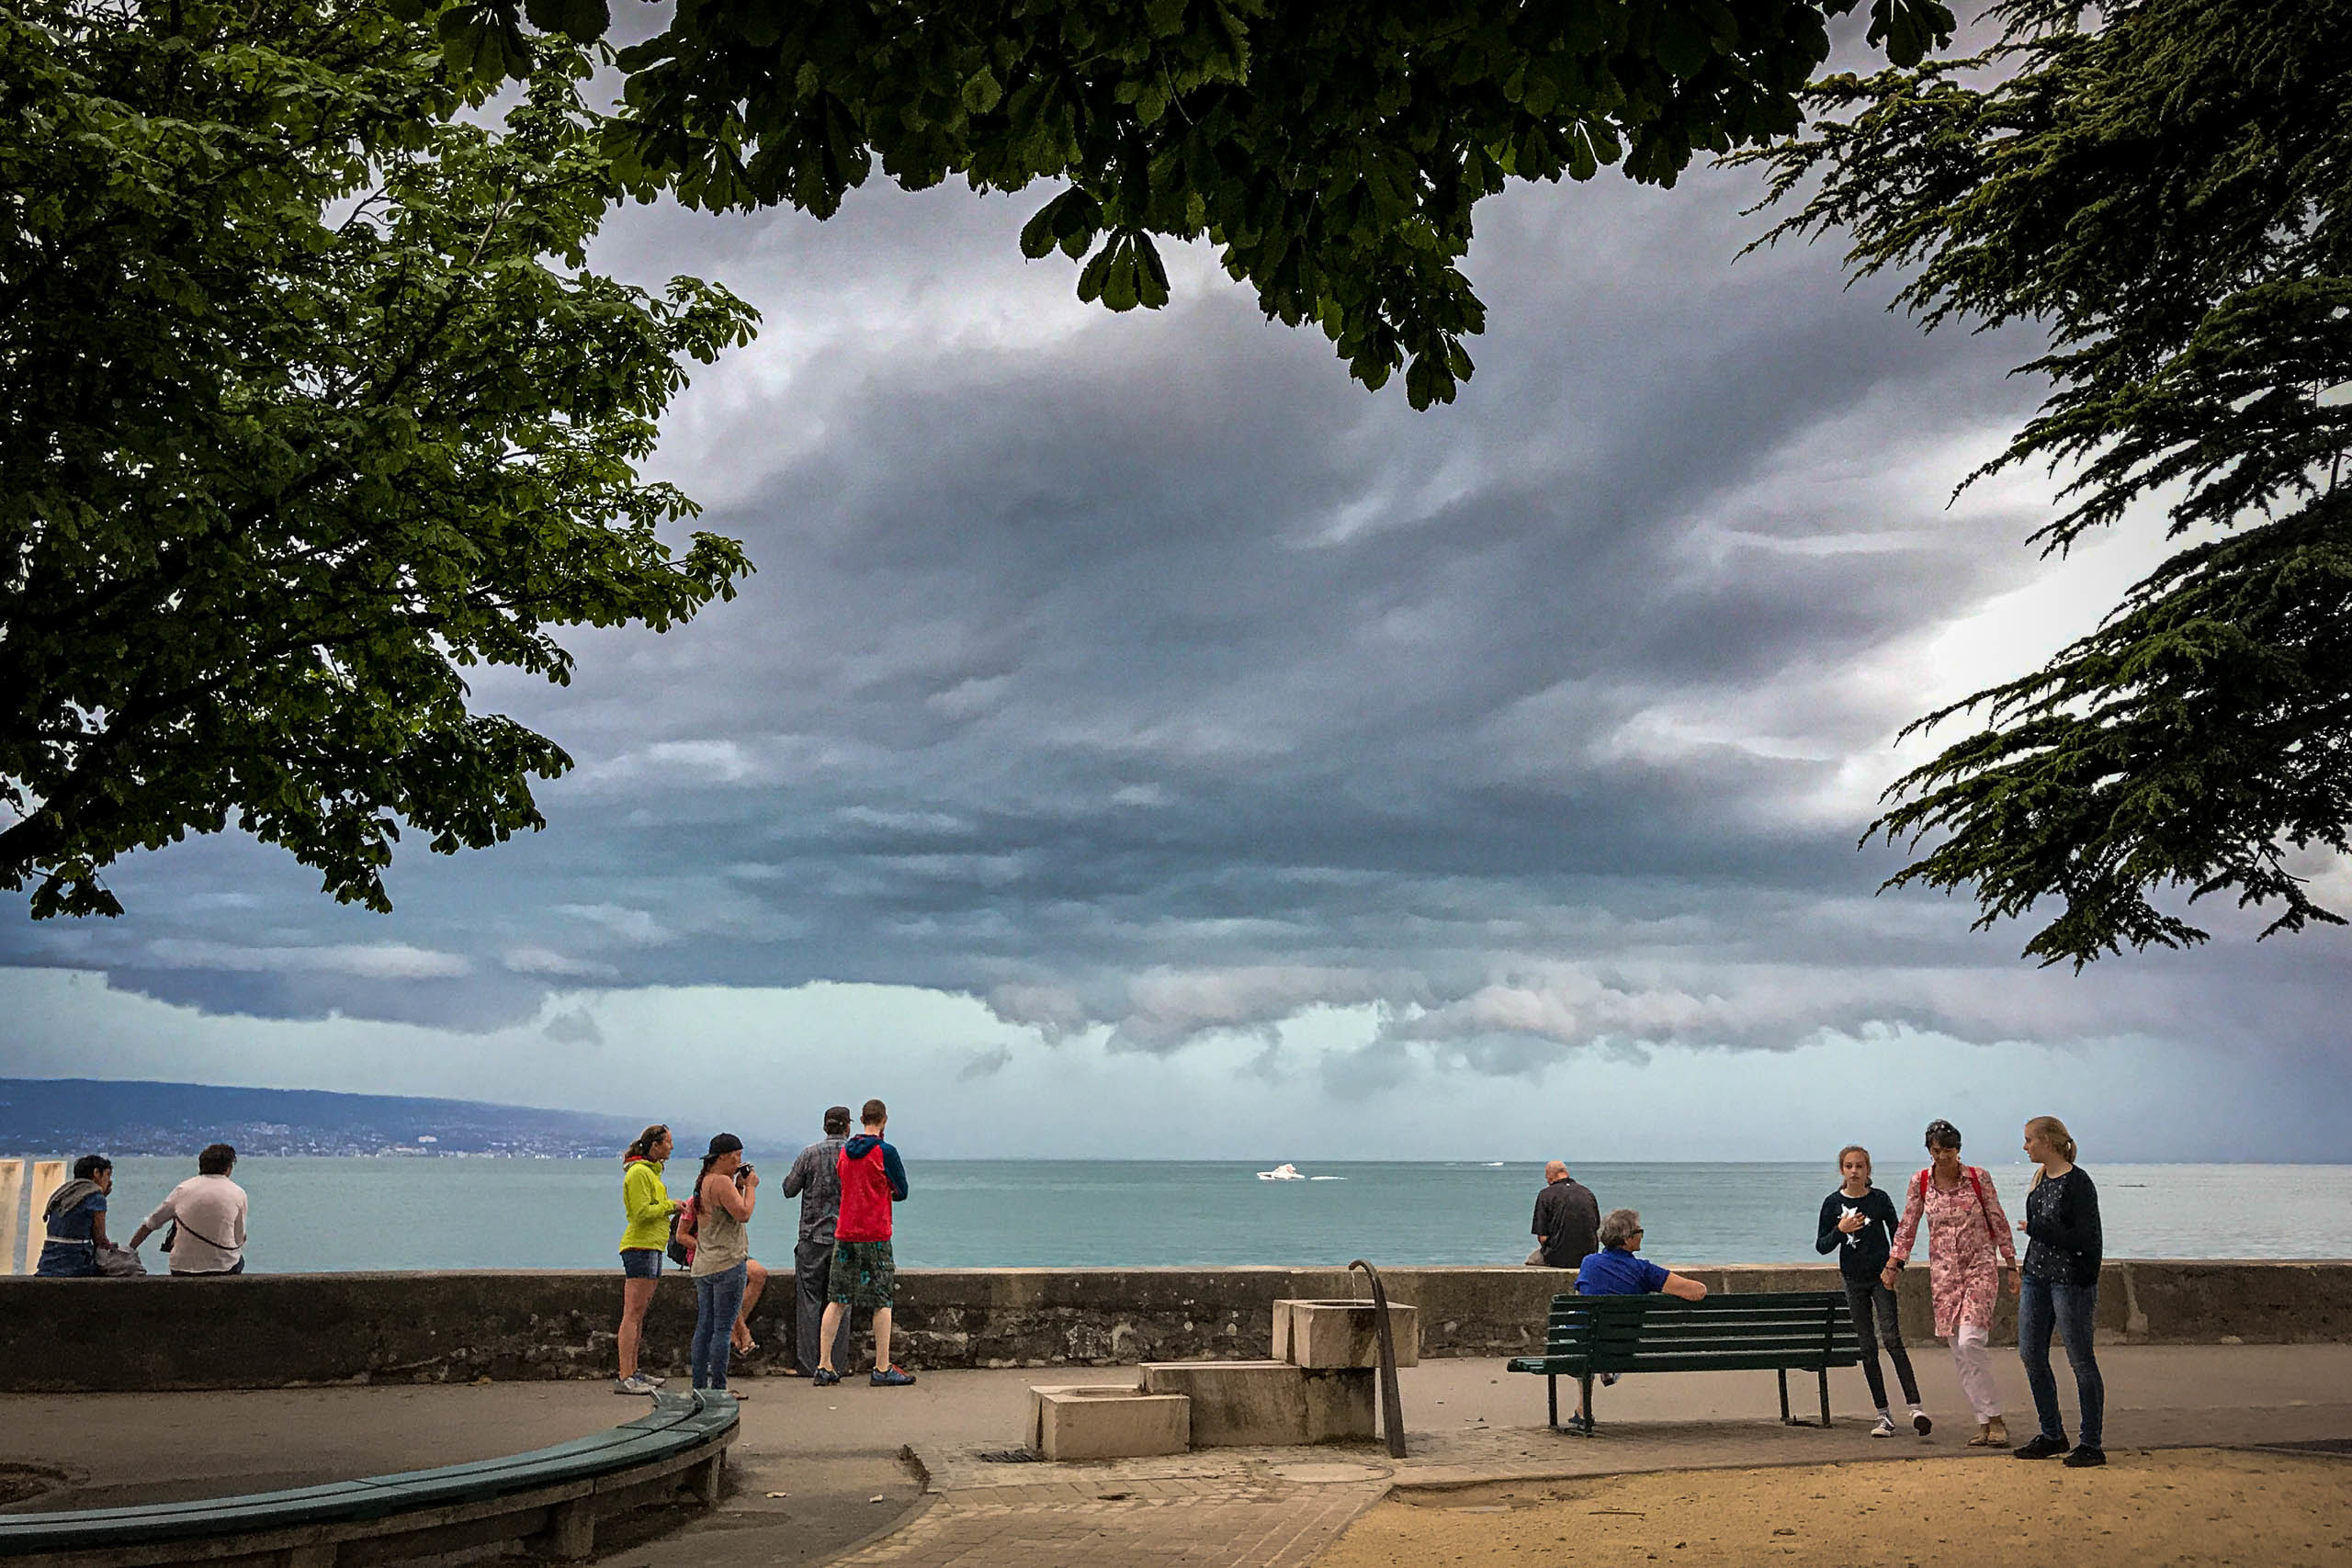 Storm clouds approaching Lutry on the shores of Lac Léman